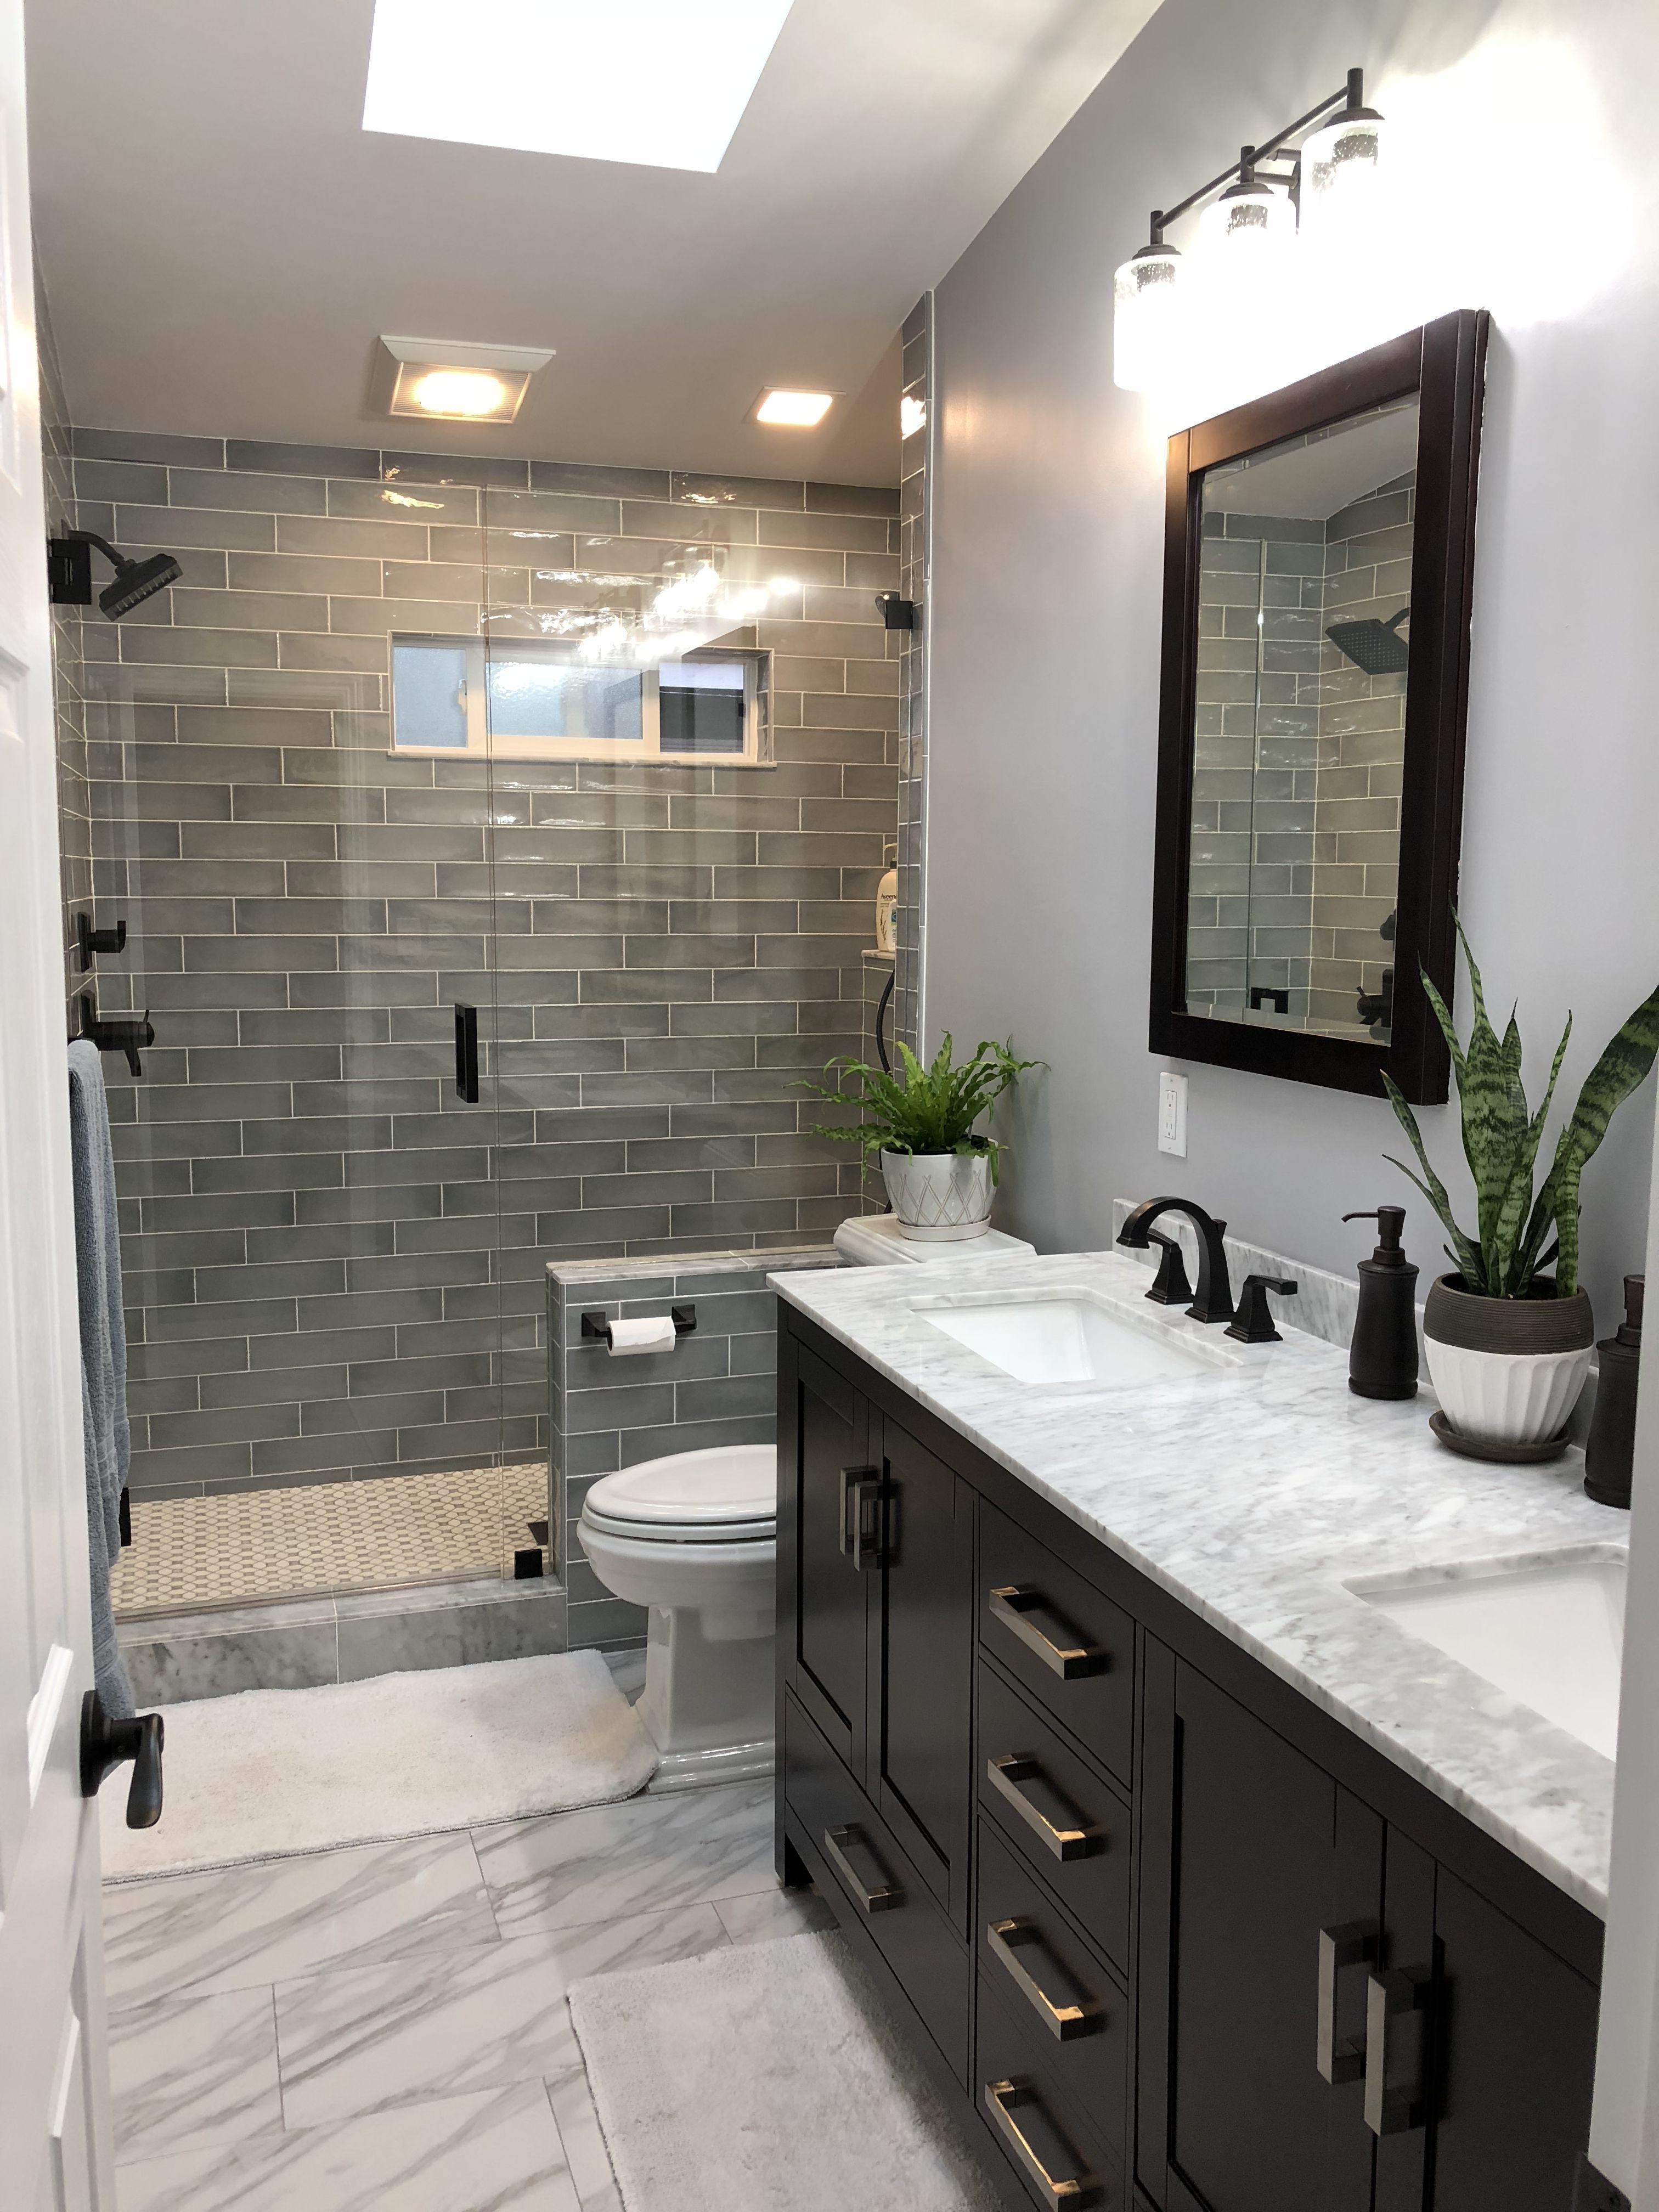 Luxury Bathroom Design Ideas Every Bathroom Remodel Starts With A Style Suggestion From Bathroom Design Luxury Bathroom Remodel Master Small Bathroom Remodel [ 4032 x 3024 Pixel ]